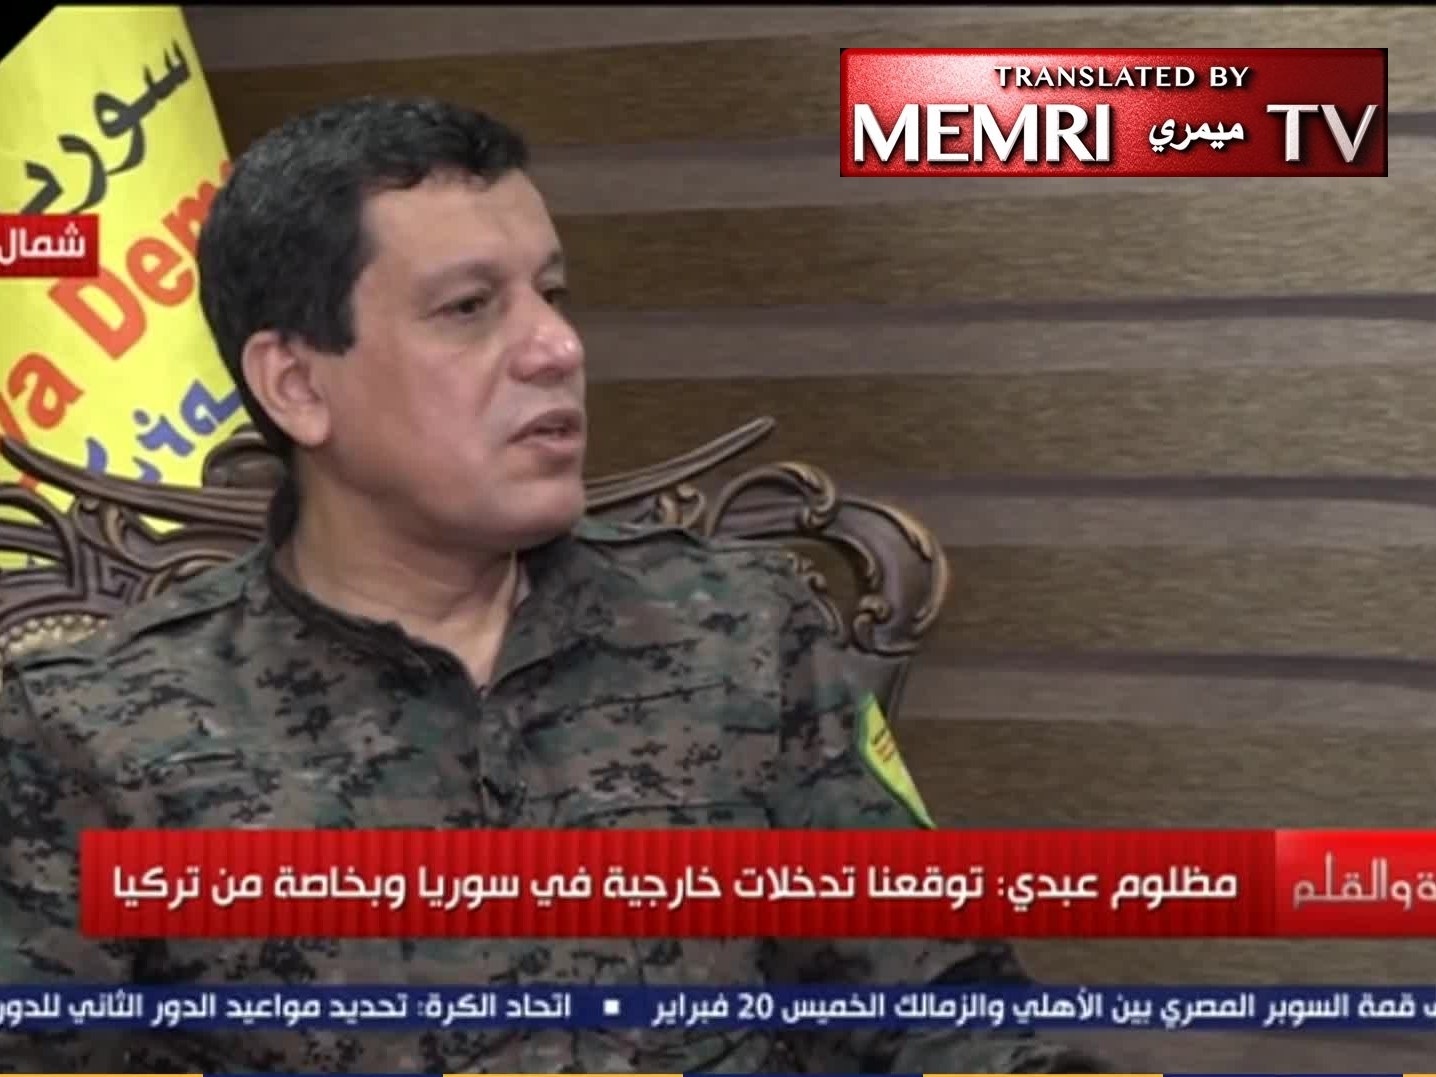 Commander-in-Chief of Syrian Democratic Forces Gen. Mazloum Abdi: Turkey Supported ISIS, Orchestrated ISIS Attacks against Kurds, Used ISIS' Decline as Pretext for Occupying Syrian Territories